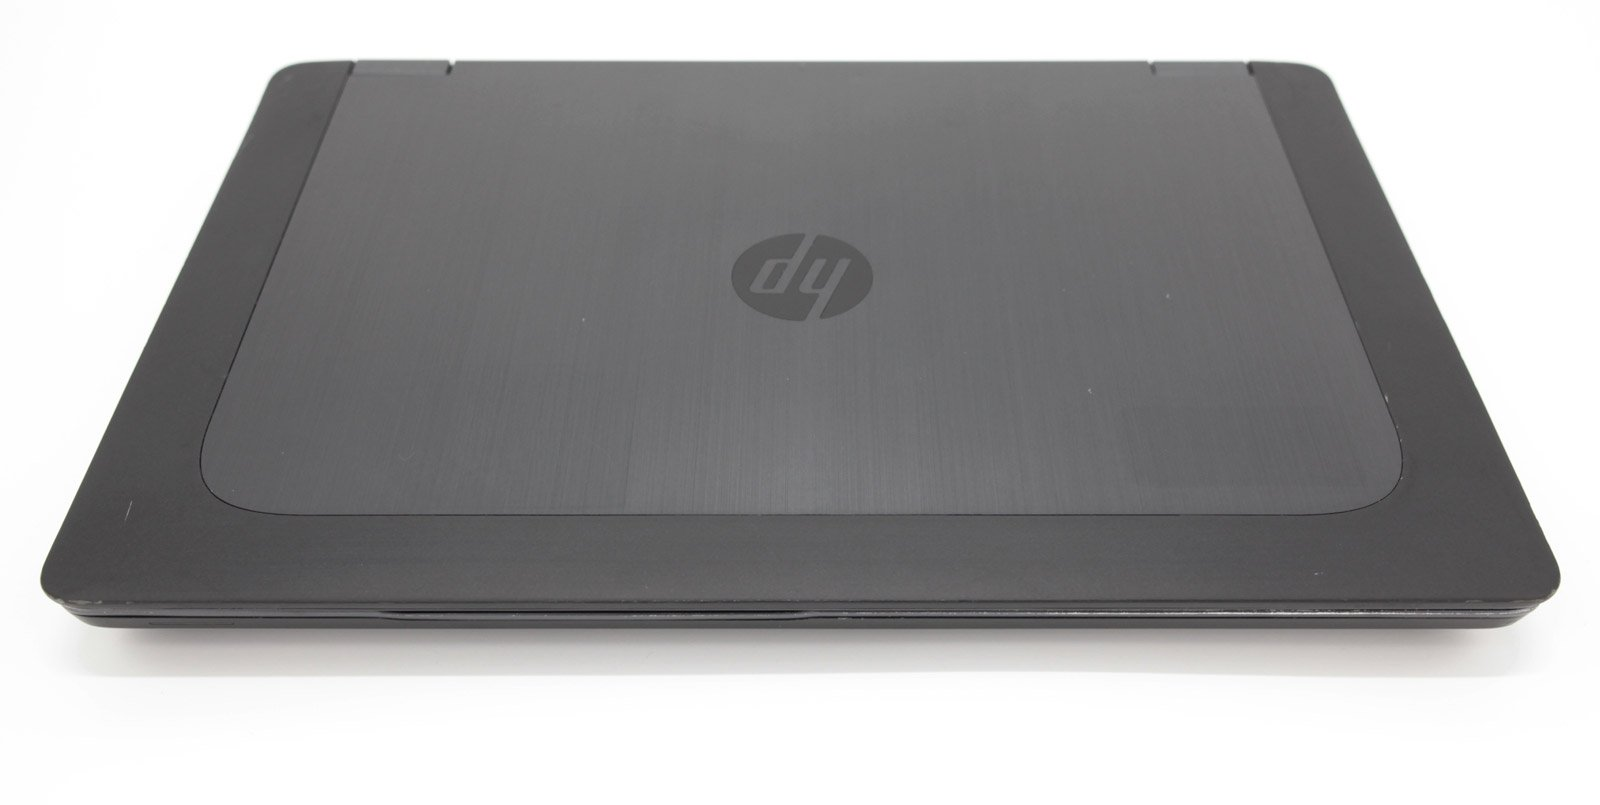 HP ZBook 15 G2 CAD Laptop: 16GB RAM, 4th Gen Core i7, K2100M, 256GB Warranty VAT - CruiseTech